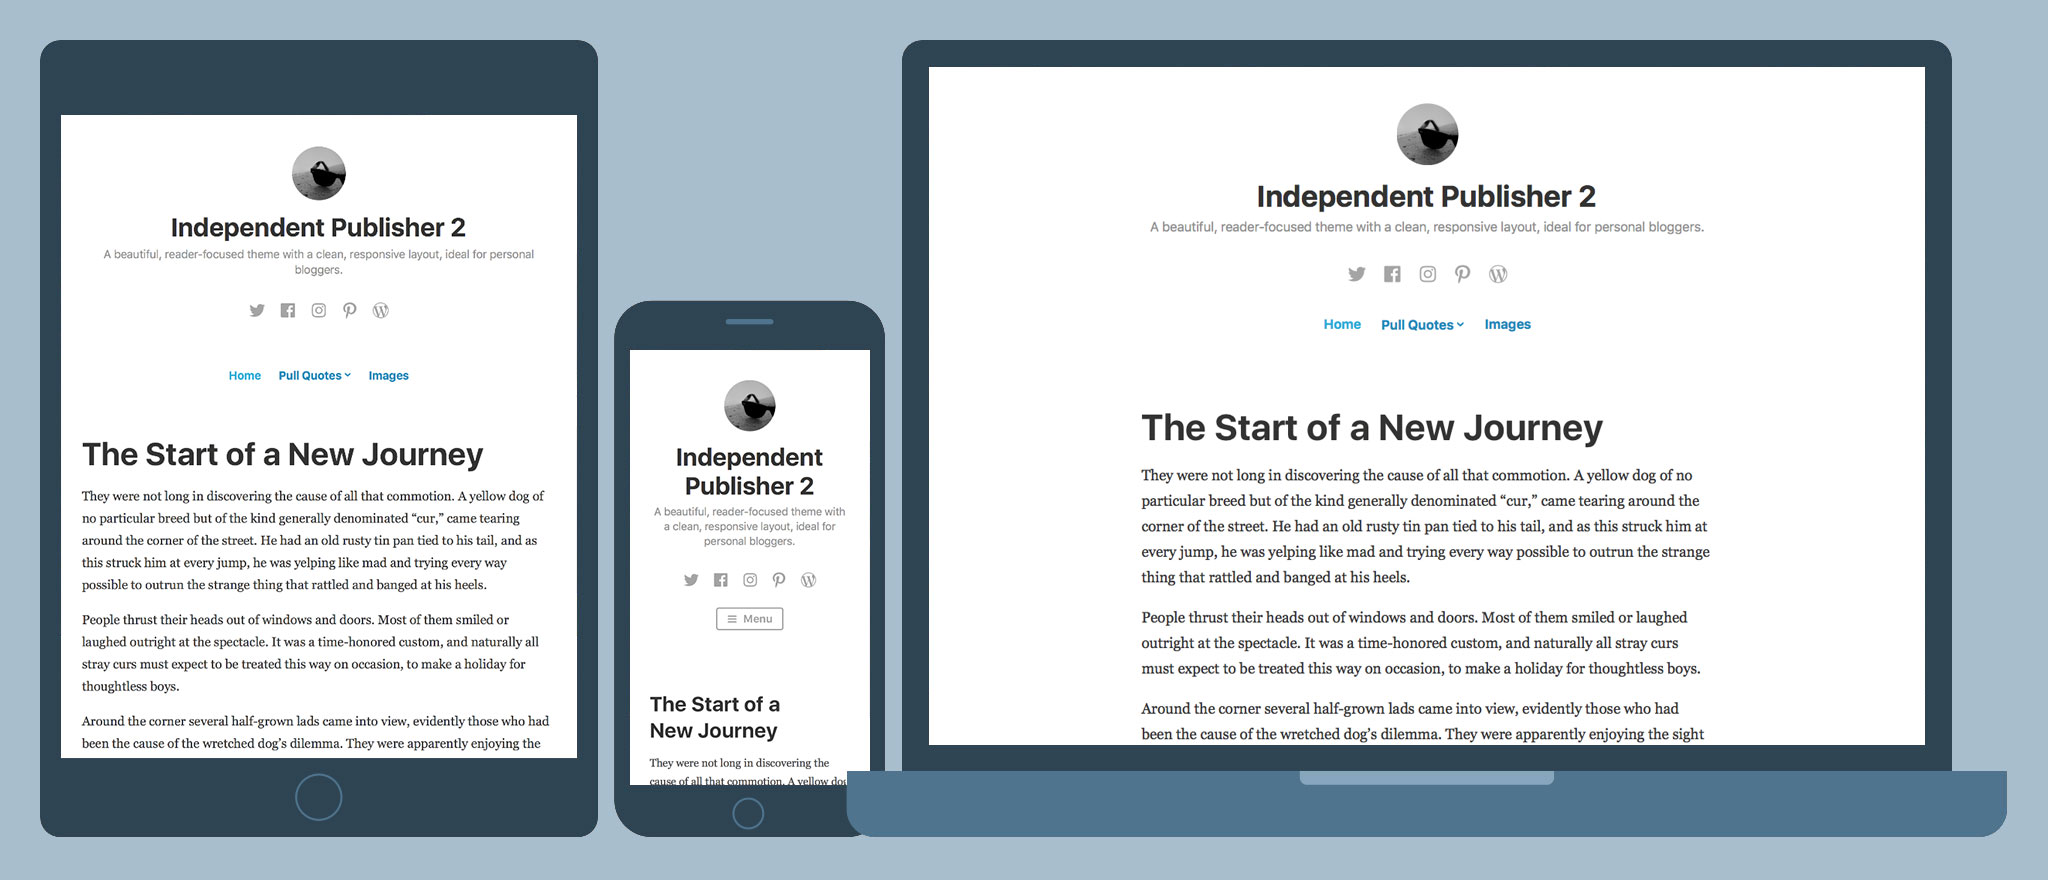 Independent Publisher 2 Is Here